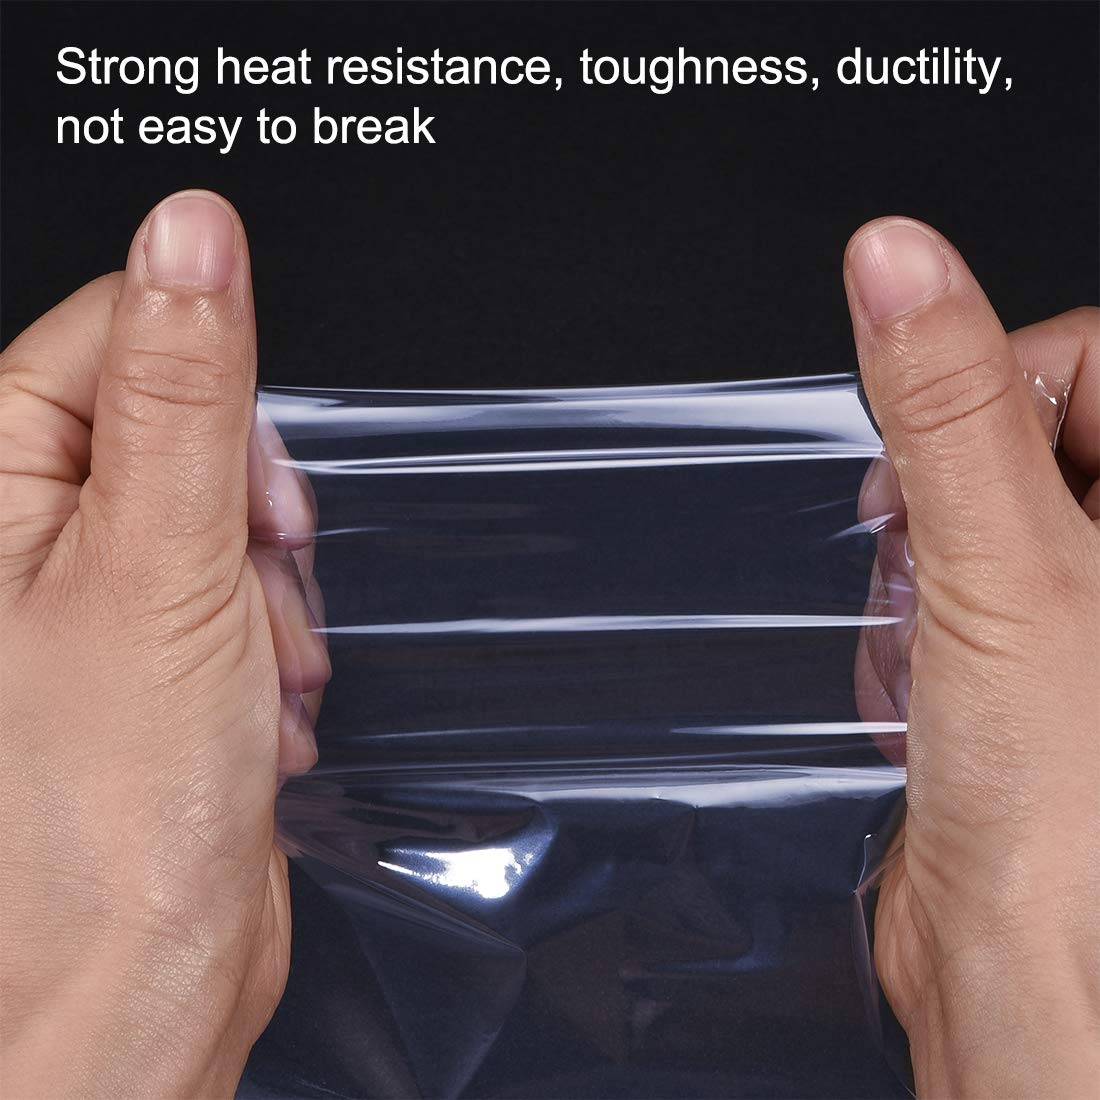 uxcell Shrink Bags 10x6.5 inch 100pcs Shrinkable Wrapping Packaging Bags Industrial Packaging Sealer Bags PVC Heat Shrink Wrap Bags